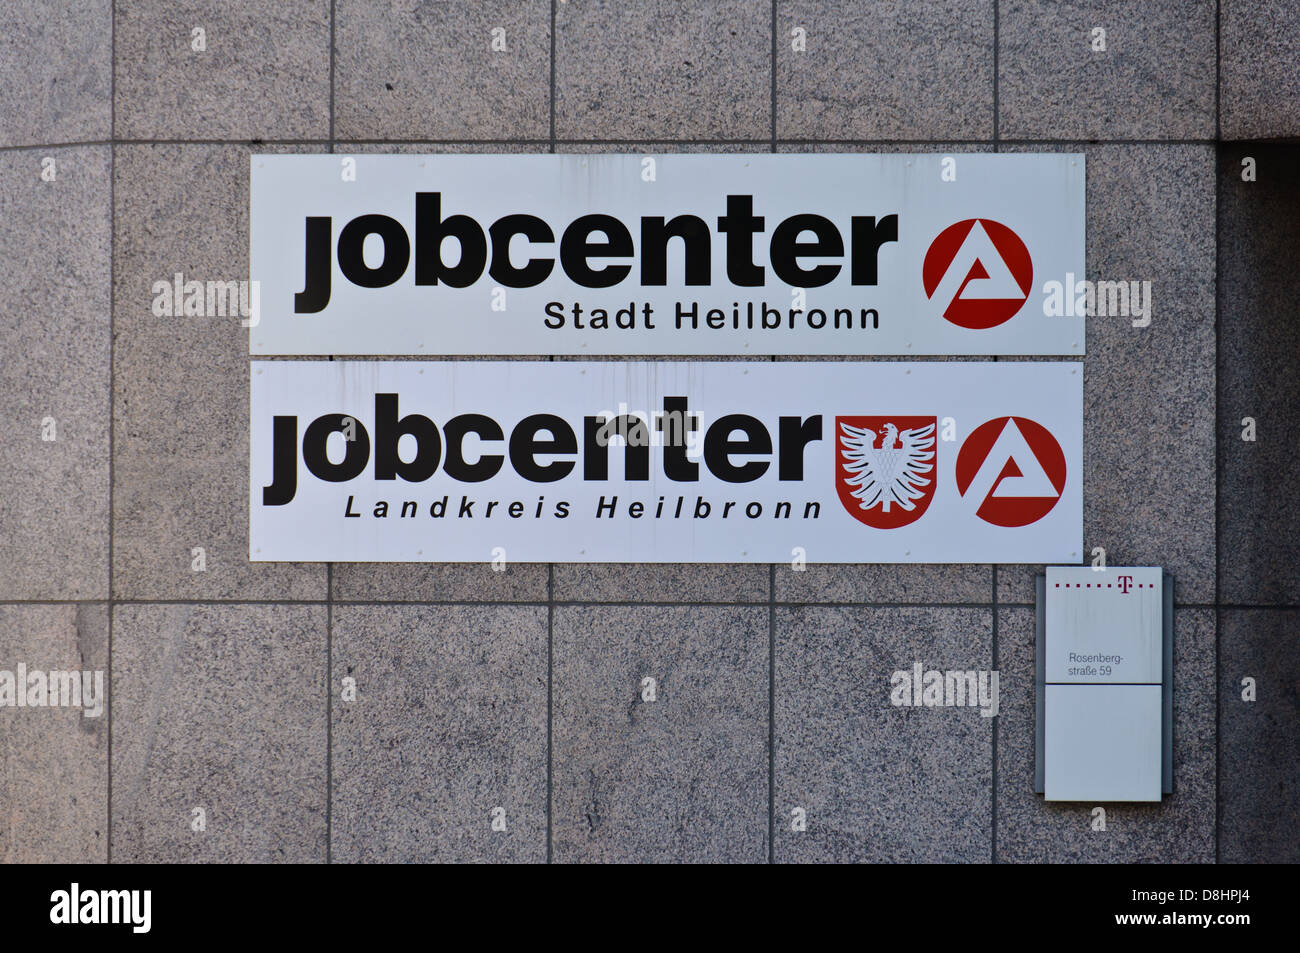 Jobcenter, German employment agency, and Deutsche Telecom signs and logo – Heilbronn Germany - Stock Image